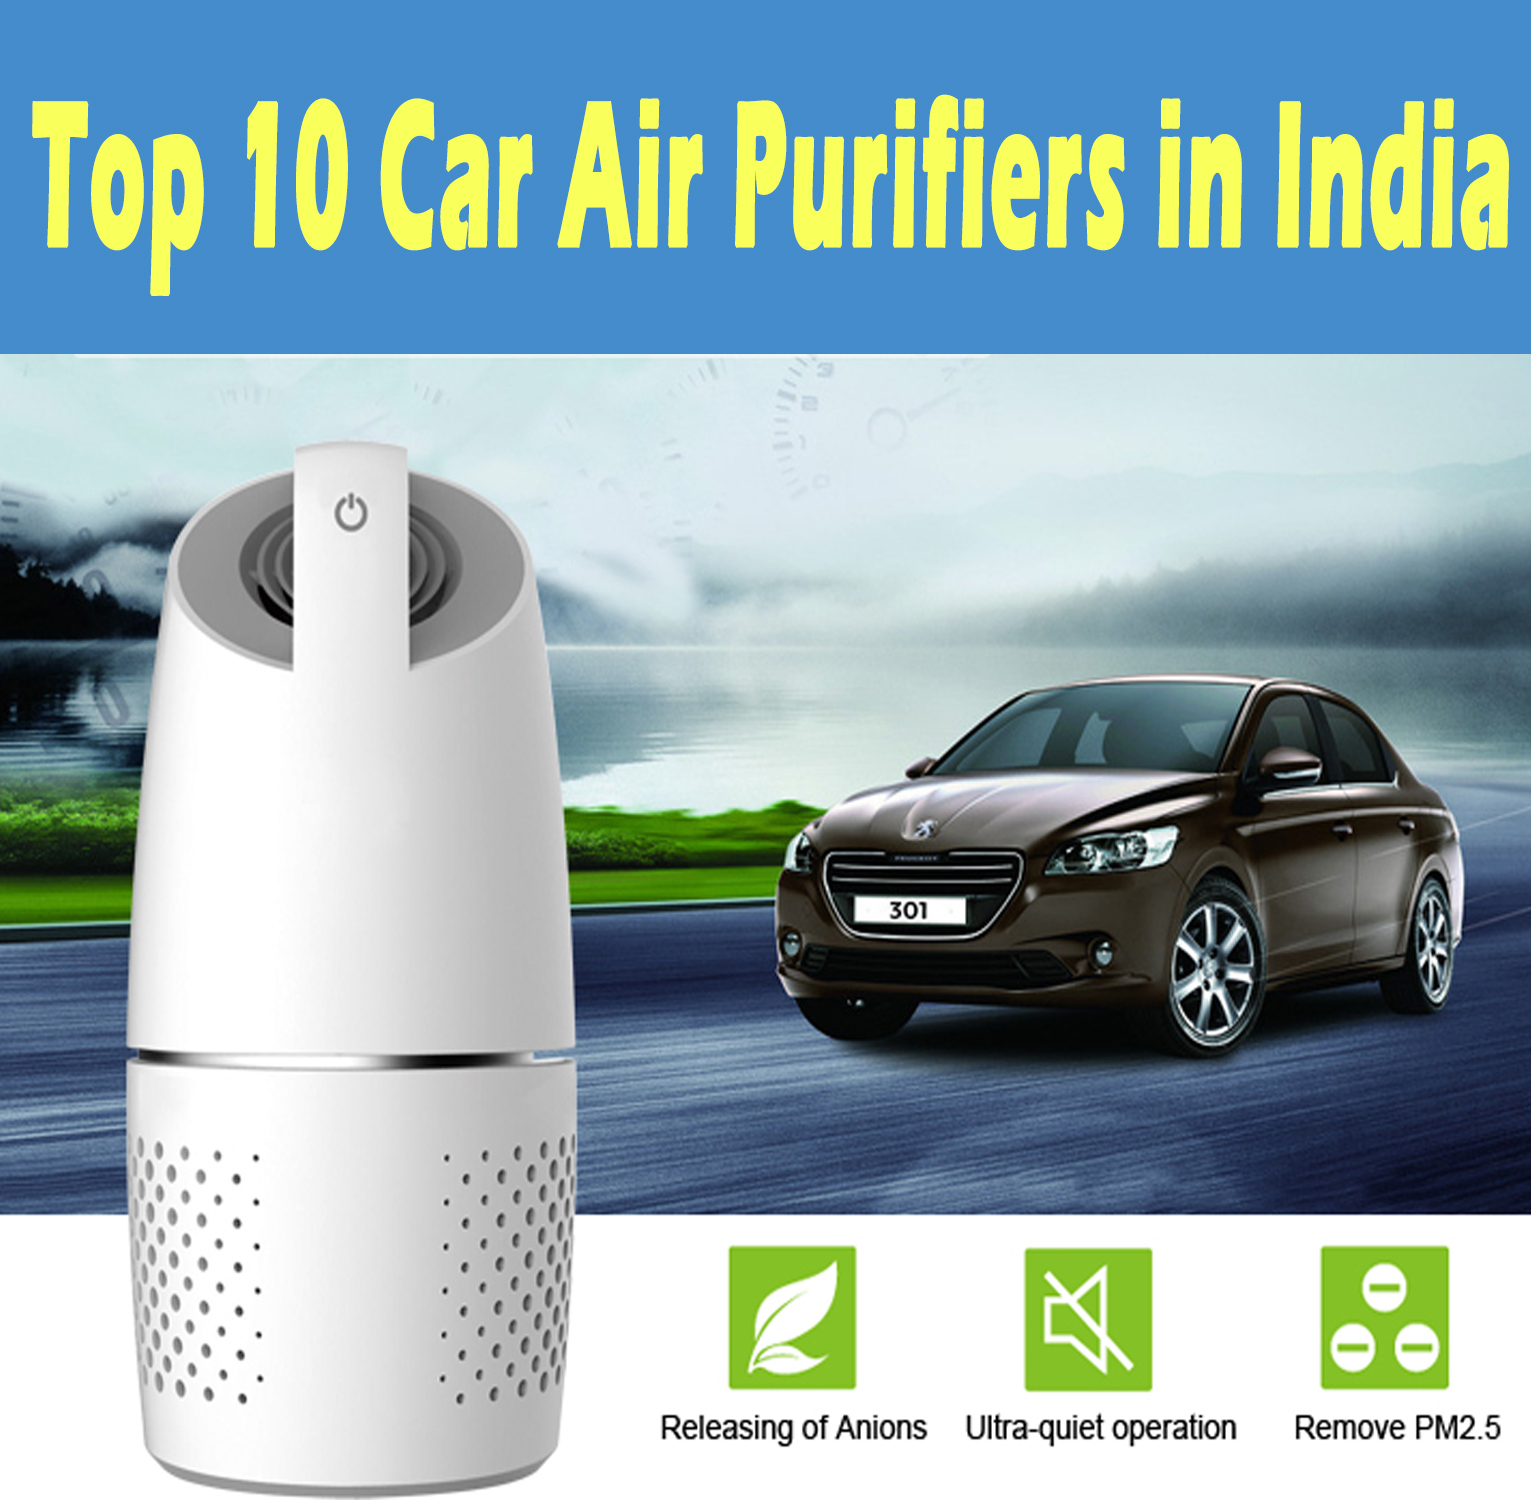 Top 10 Best Car Air Purifiers in India – Ratings & Reviews 2